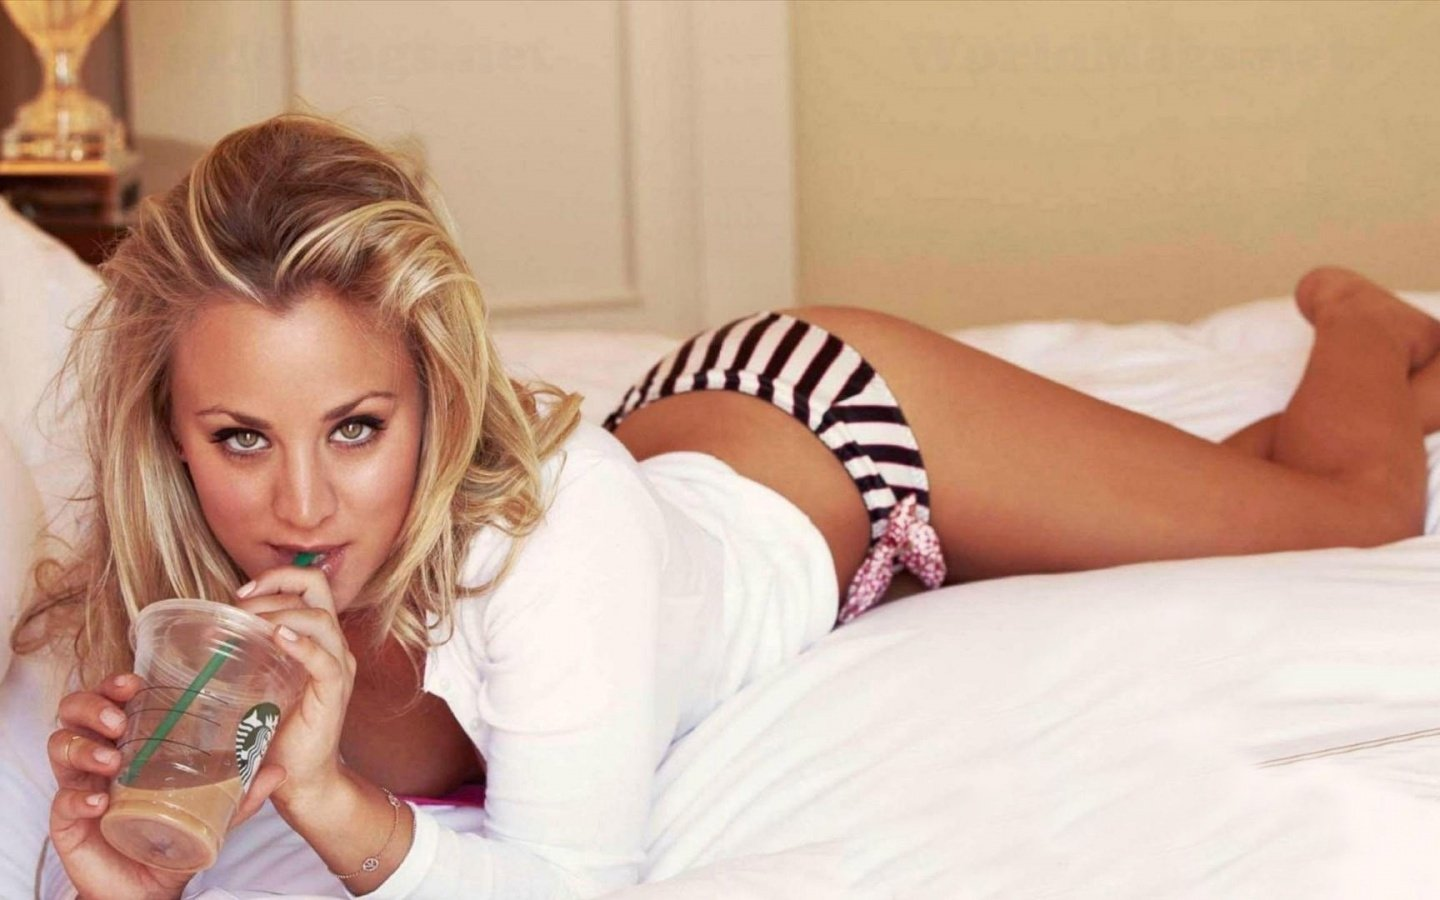 1440x900 - Kaley Cuoco Wallpapers 30